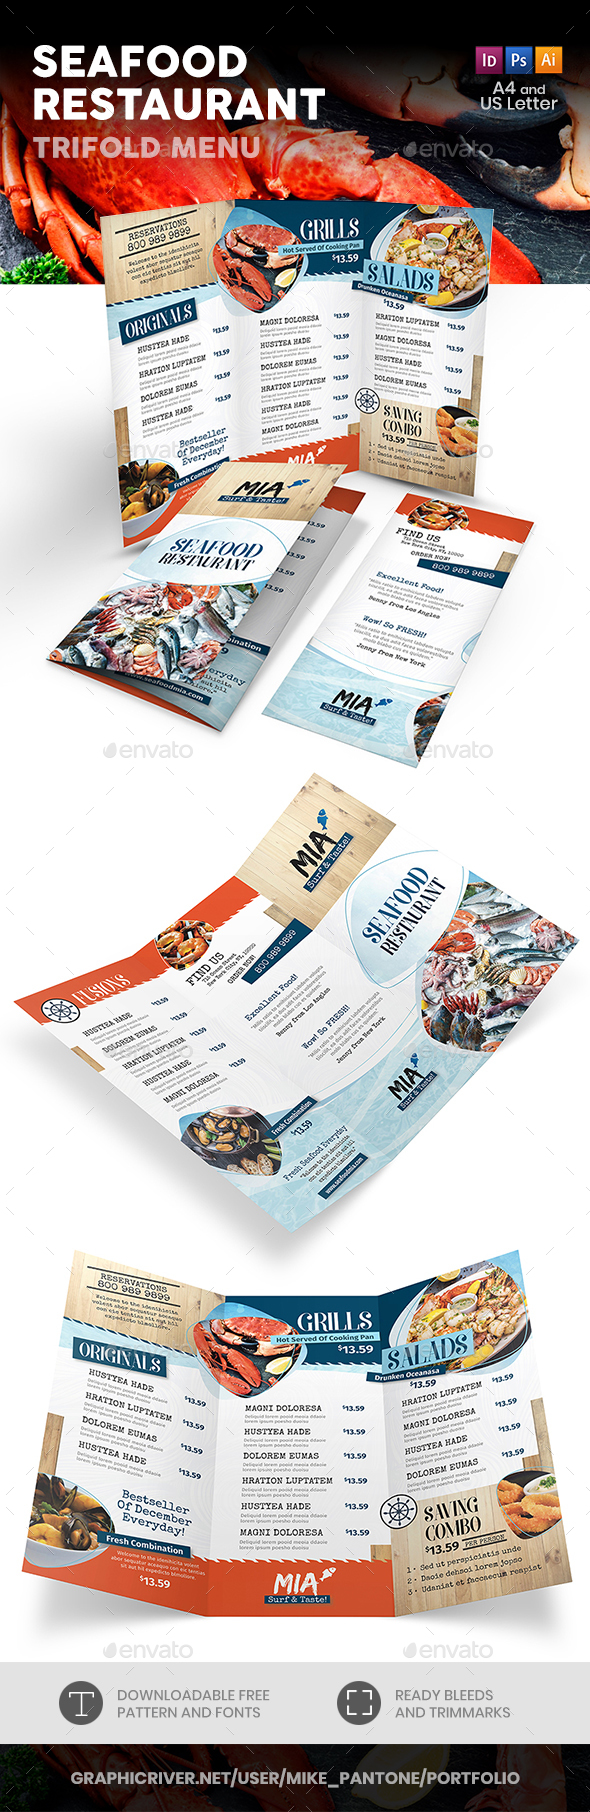 Seafood Restaurant Trifold Menu 3